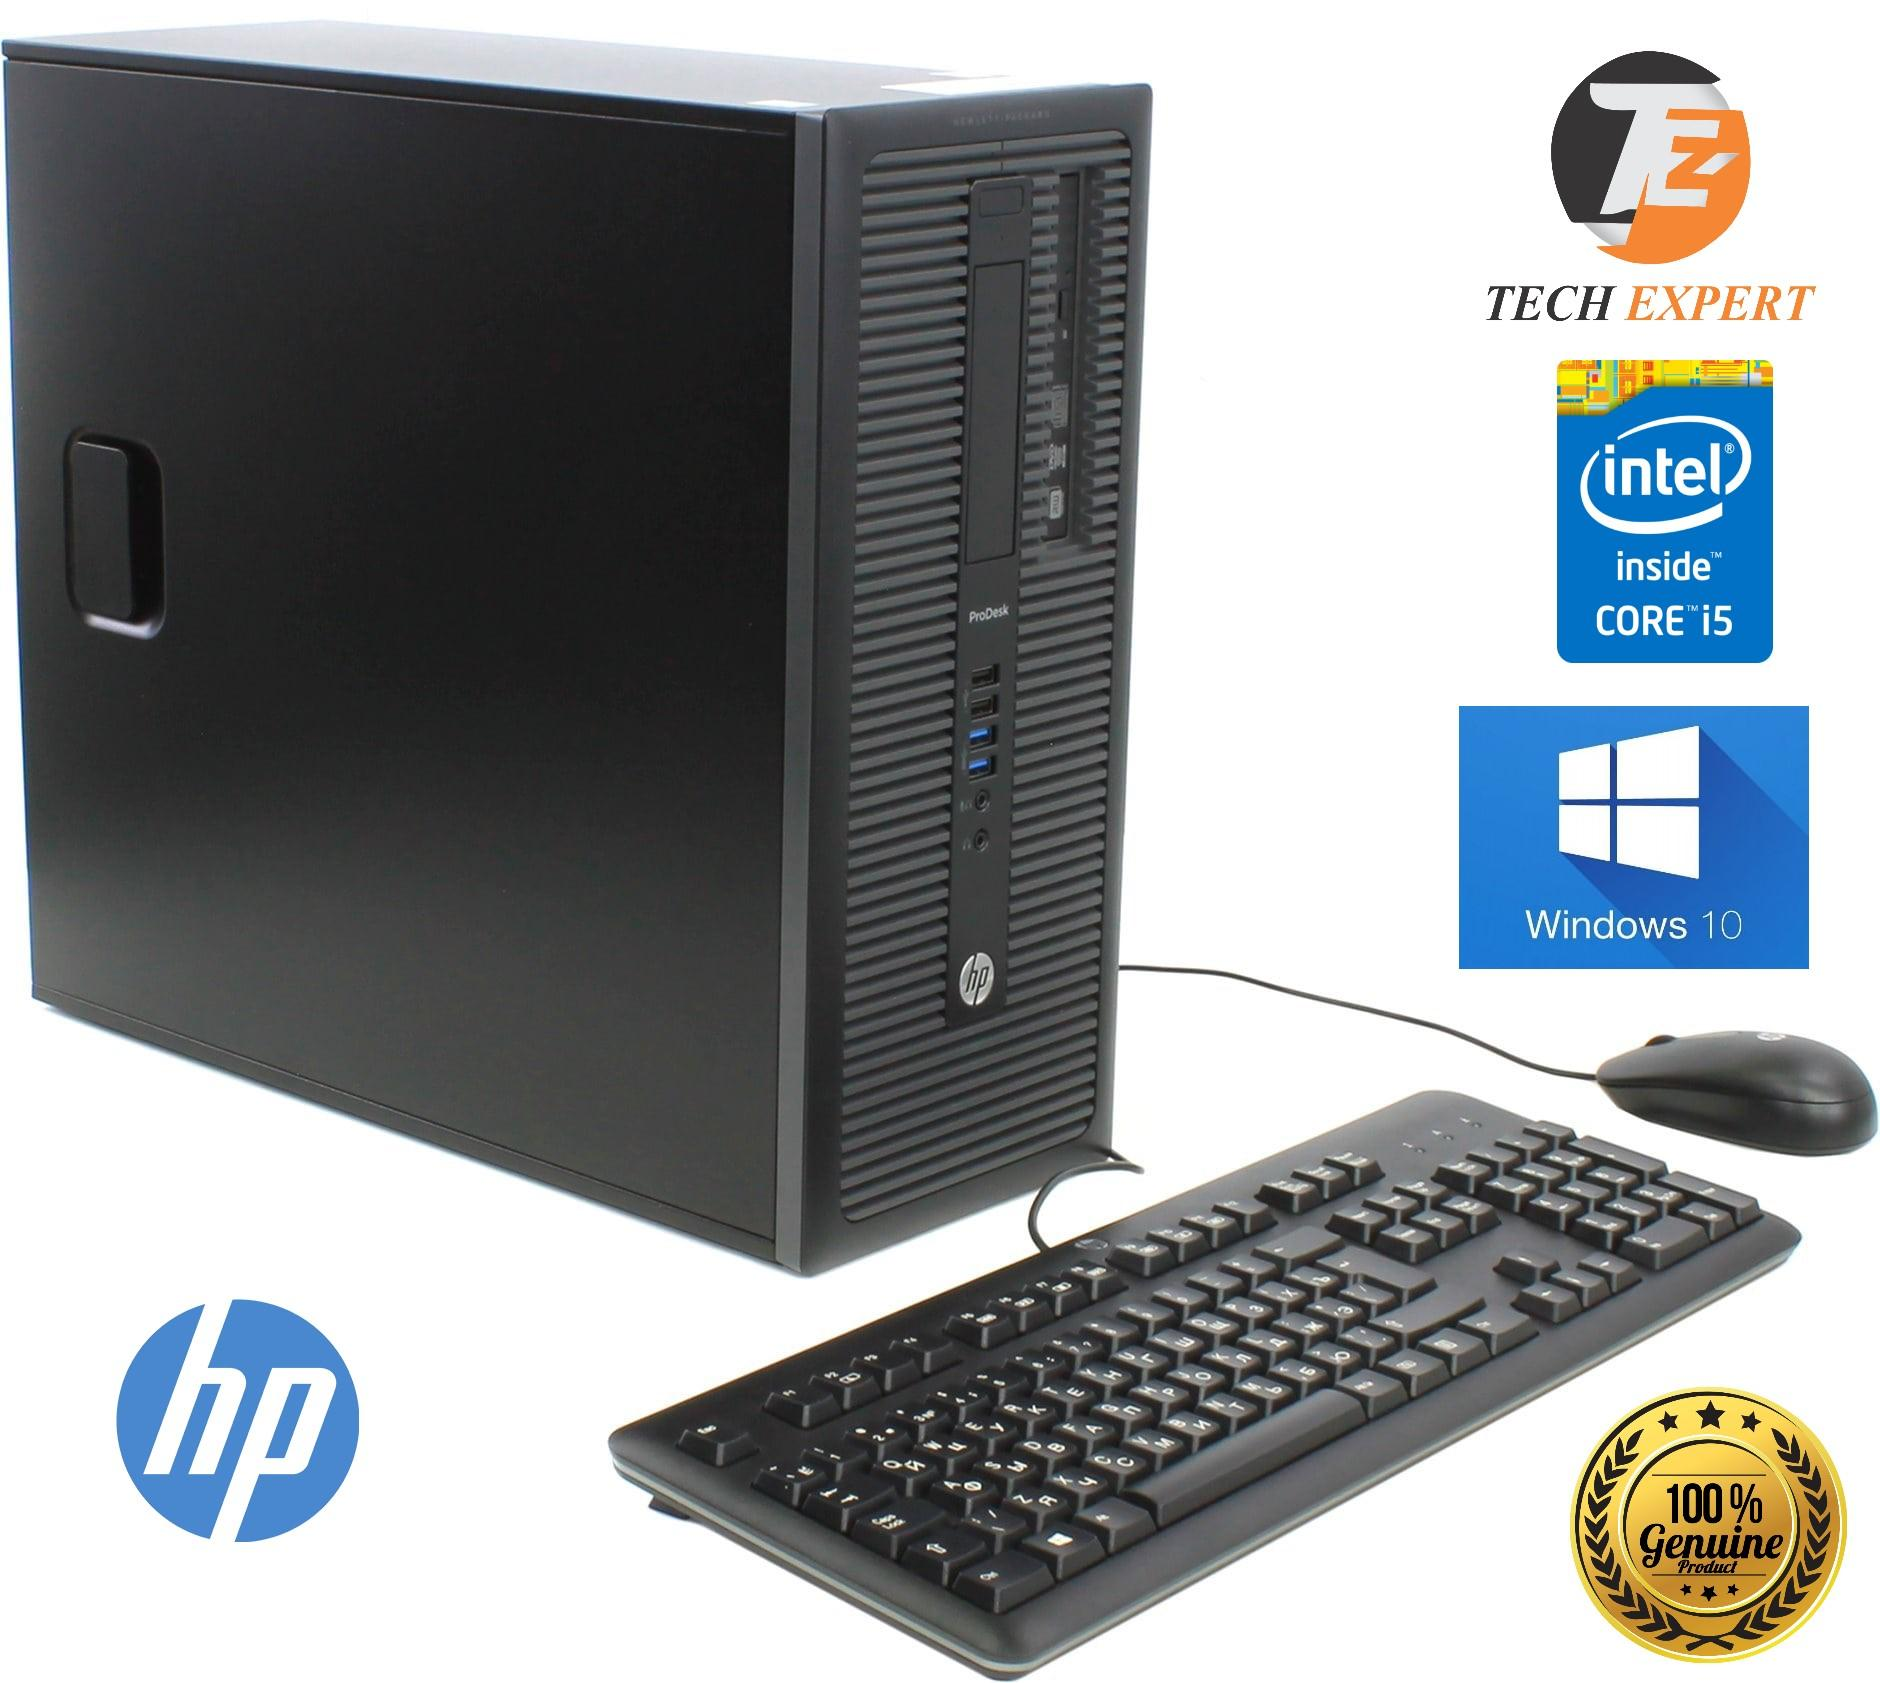 HP Elite Desk G1-600 Intel Core i5-4440 4GB, 360GB, Gaming PC Win10  Pro(Microsoft Certified)